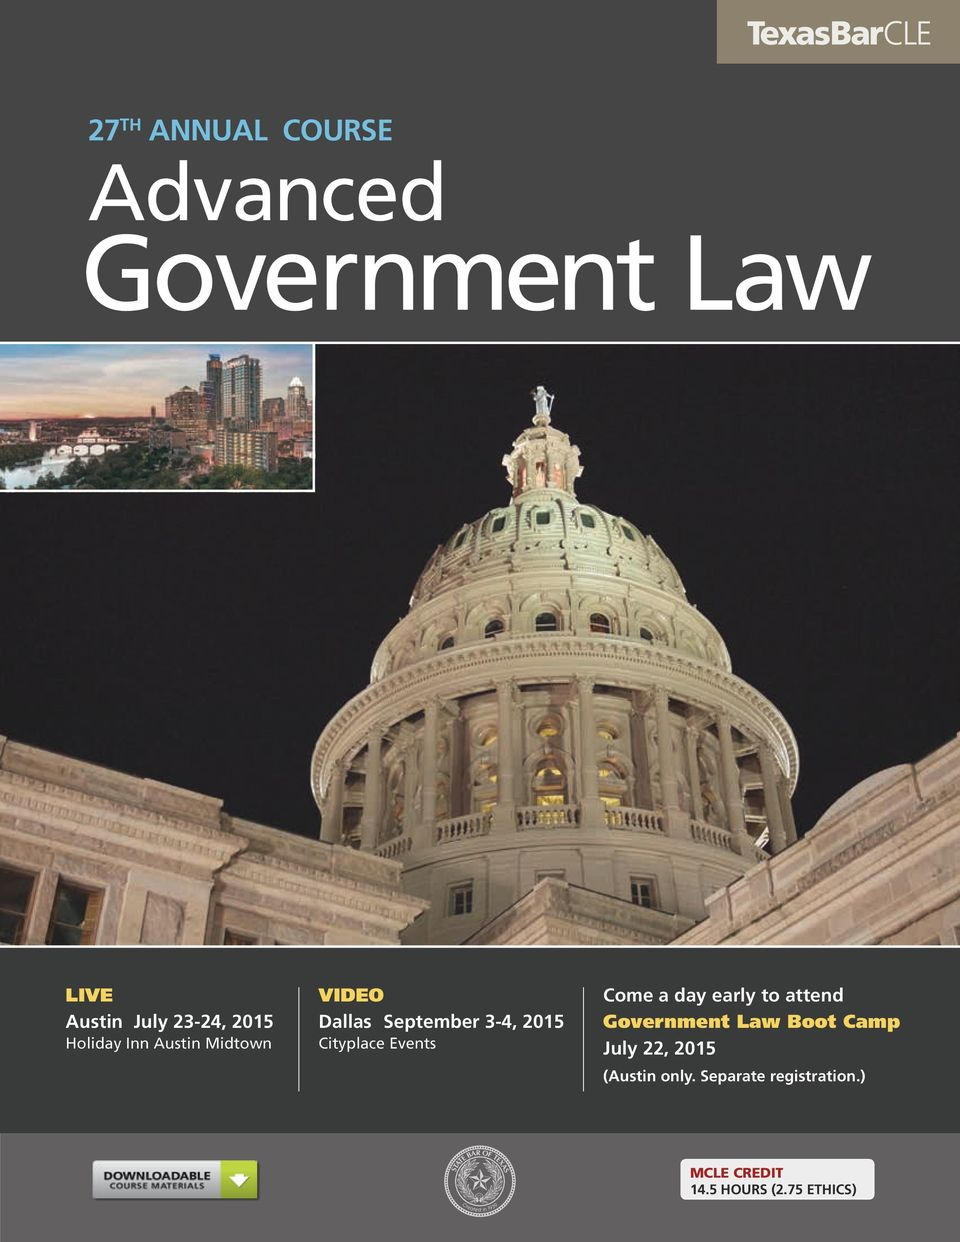 Come a day early to attend Government Law Boot Camp July 22, 2015